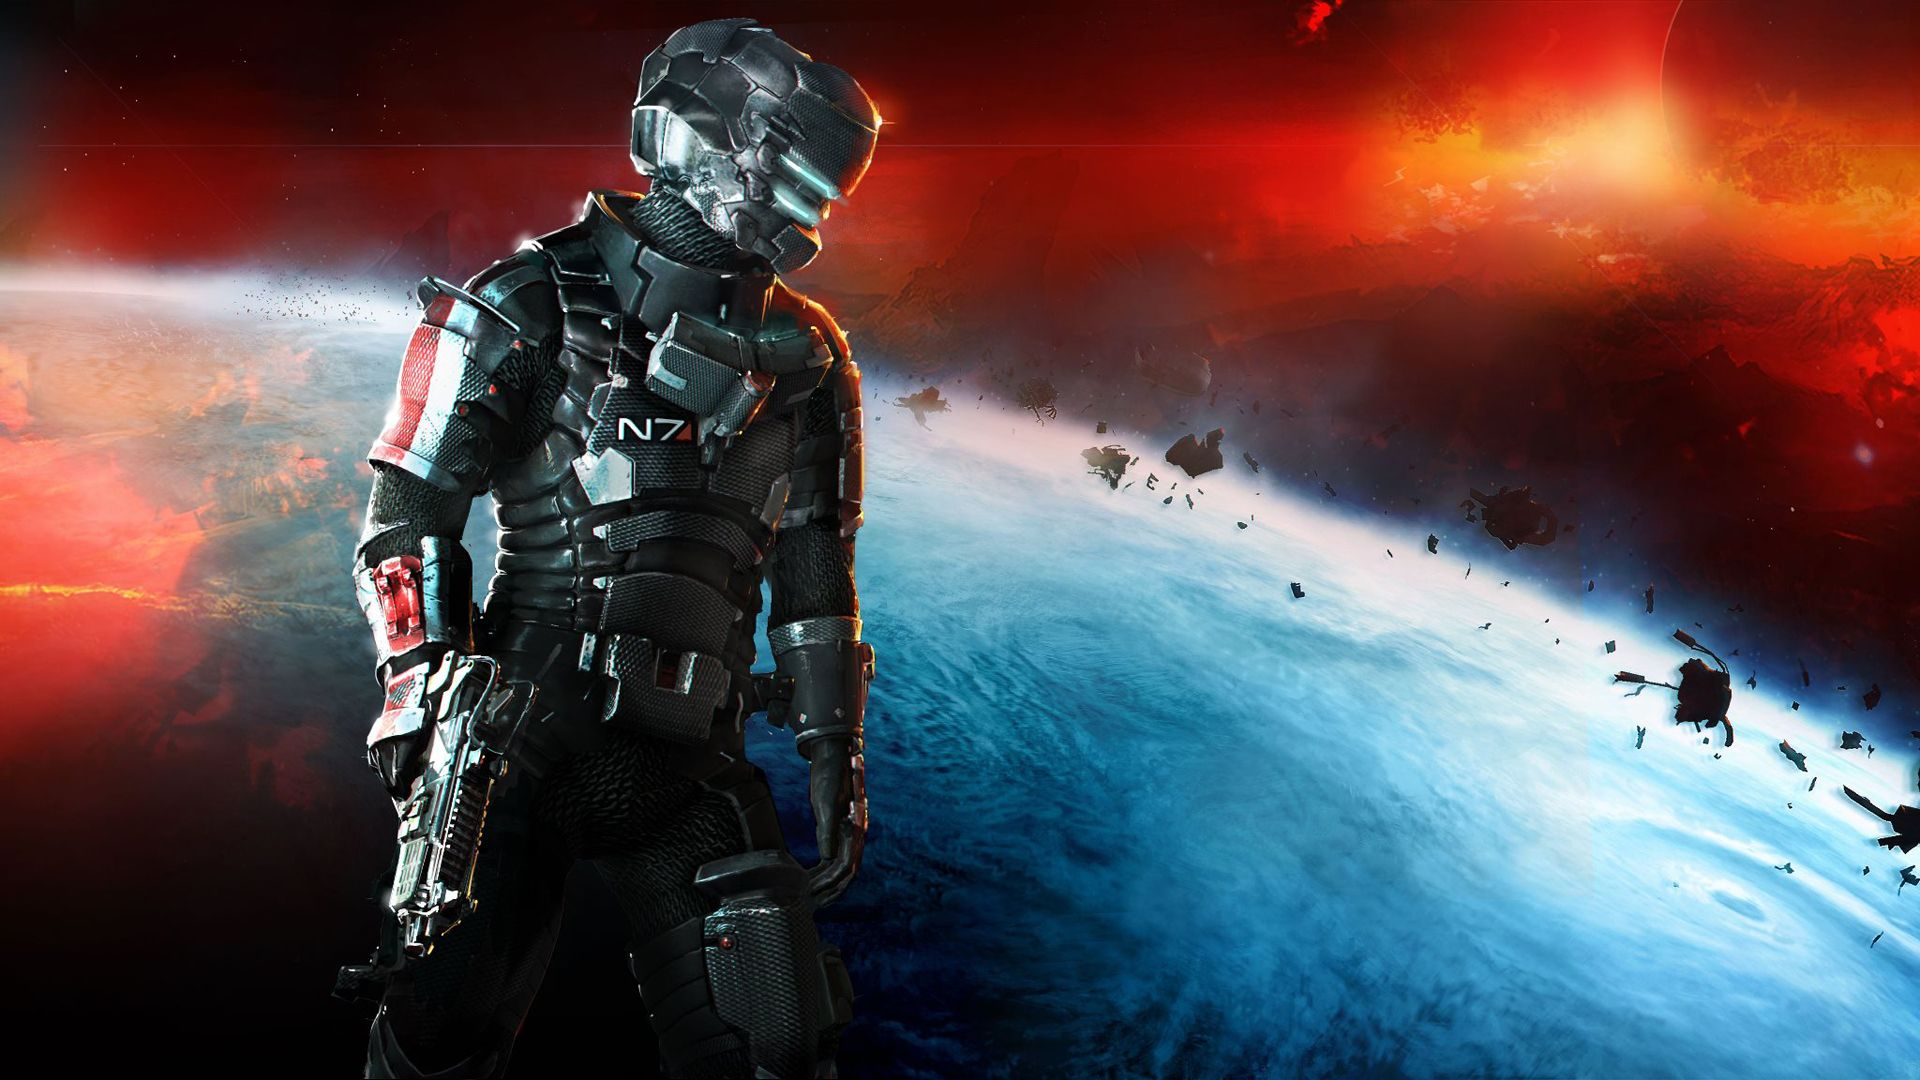 Dead Space 3 Wallpapers Top Free Dead Space 3 Backgrounds